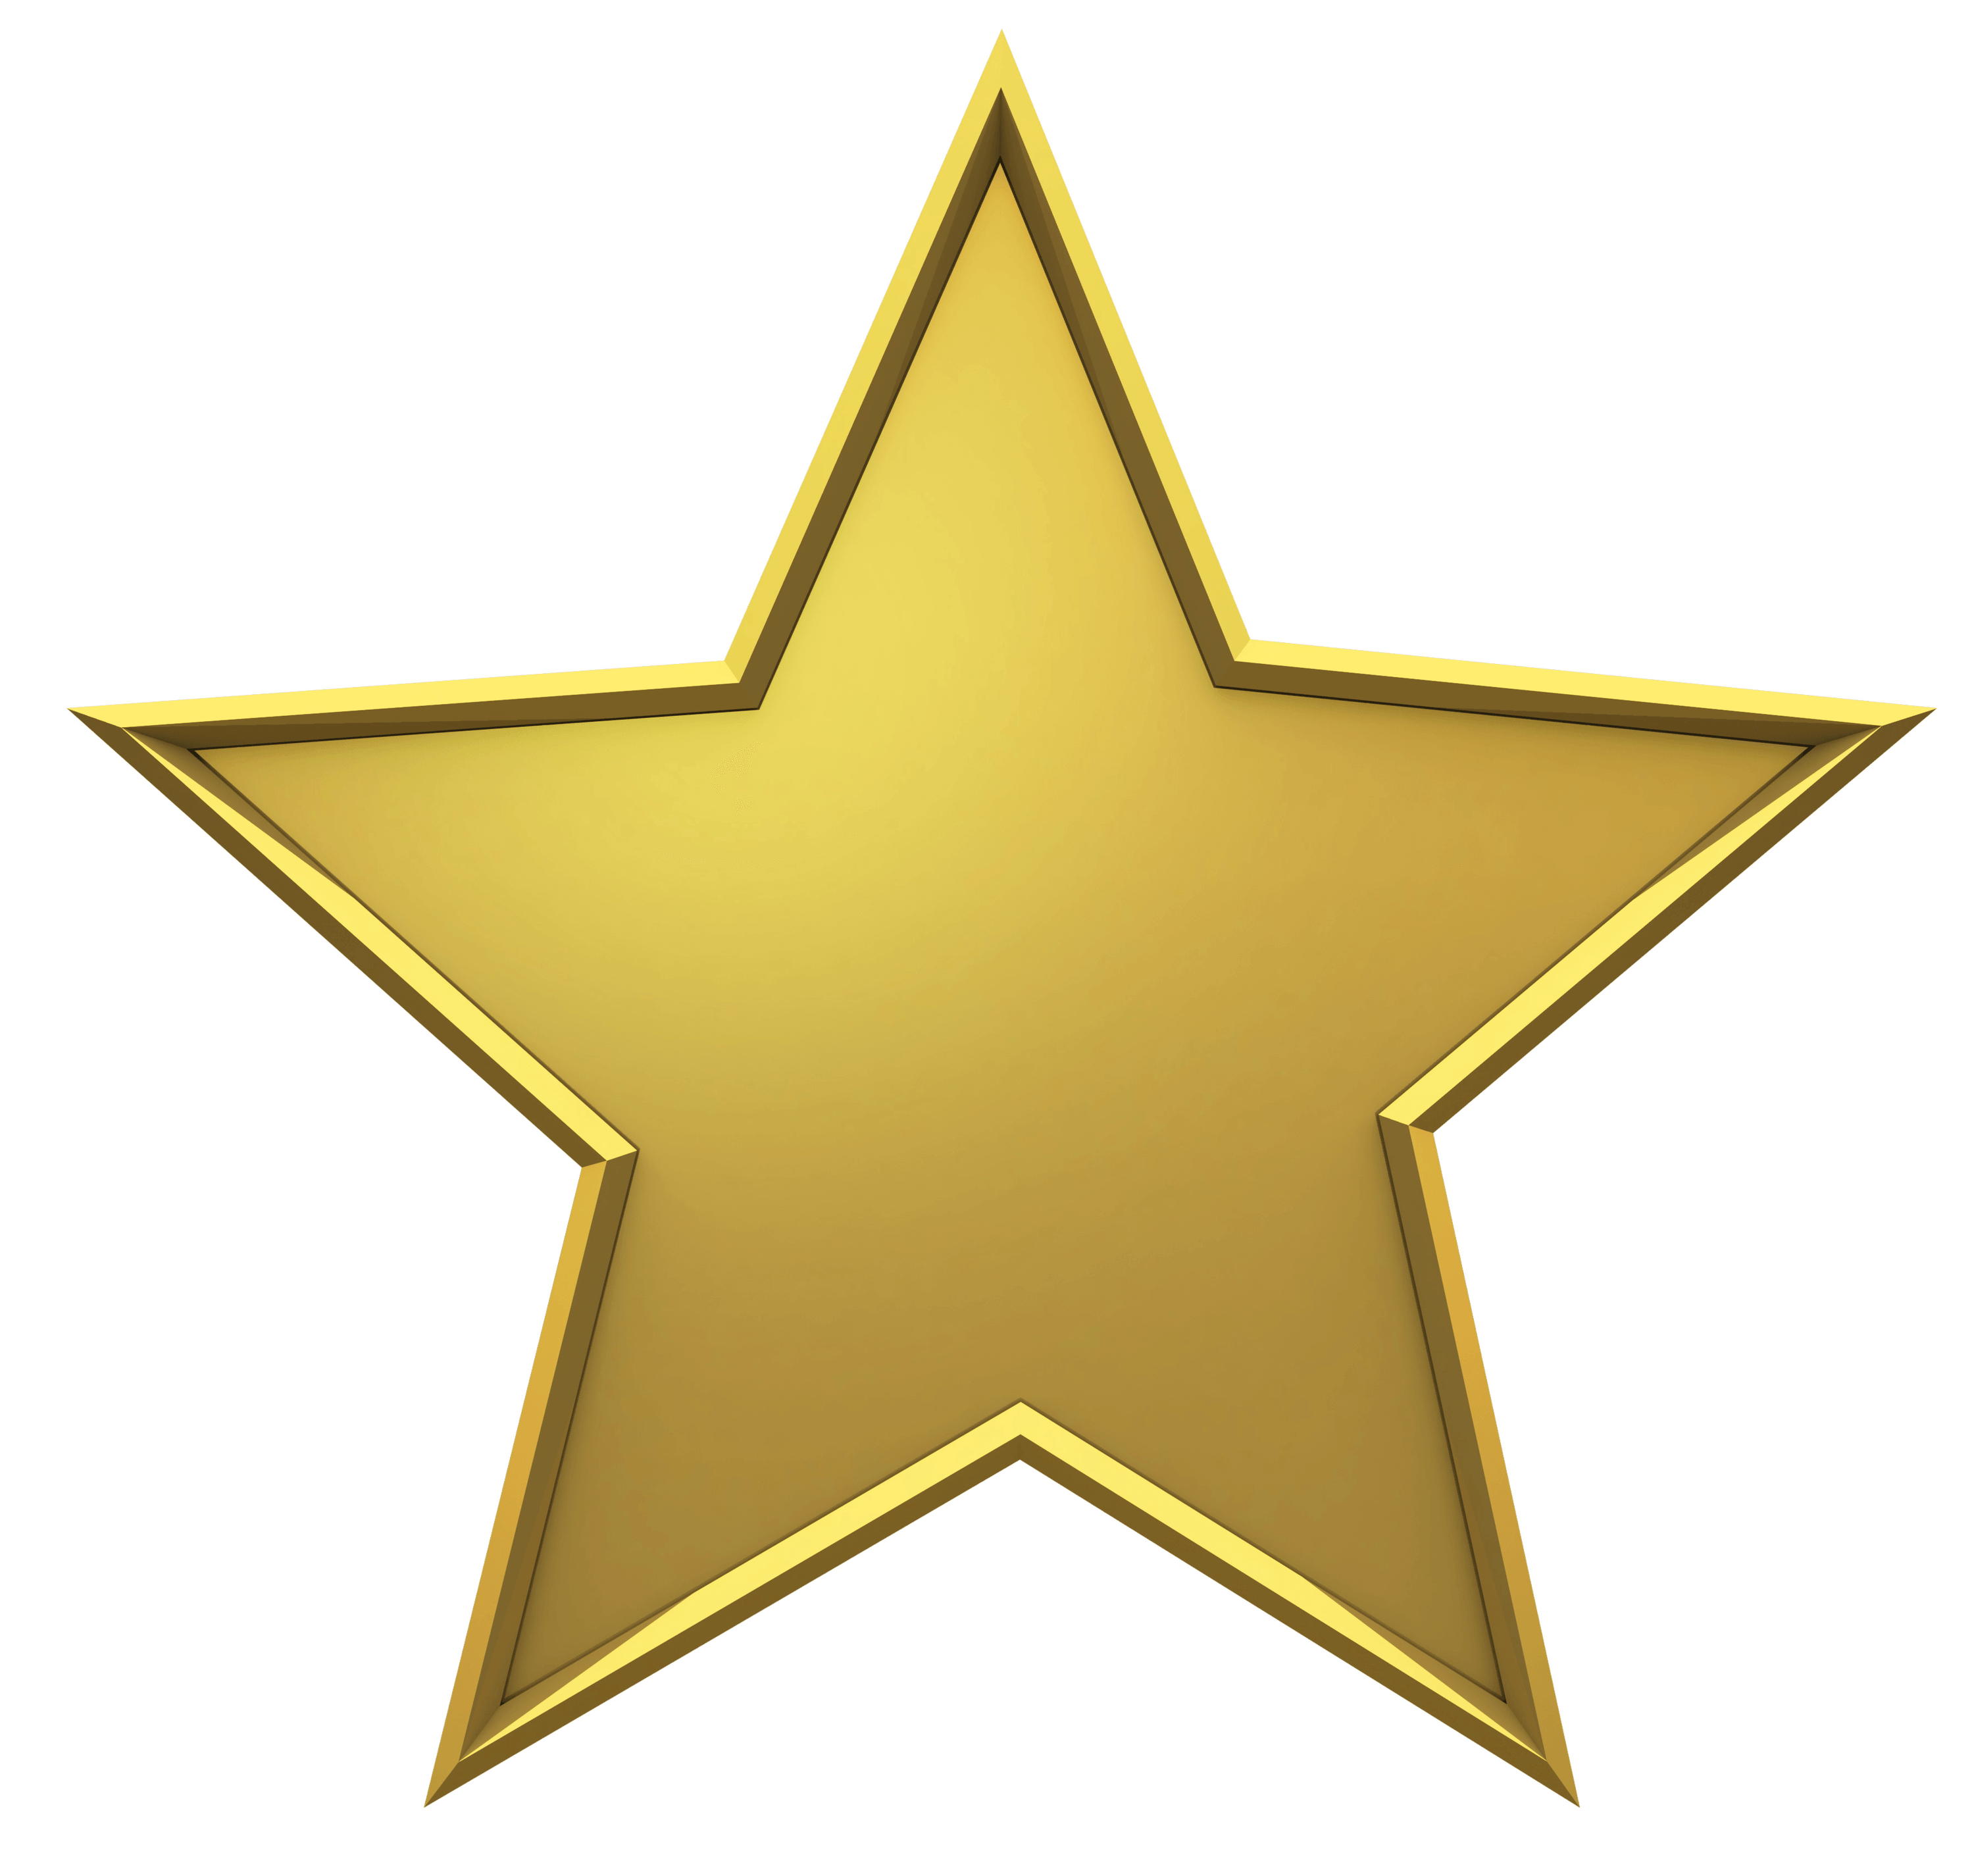 Hollywood Gold Star - Yellow Stars PNG HD